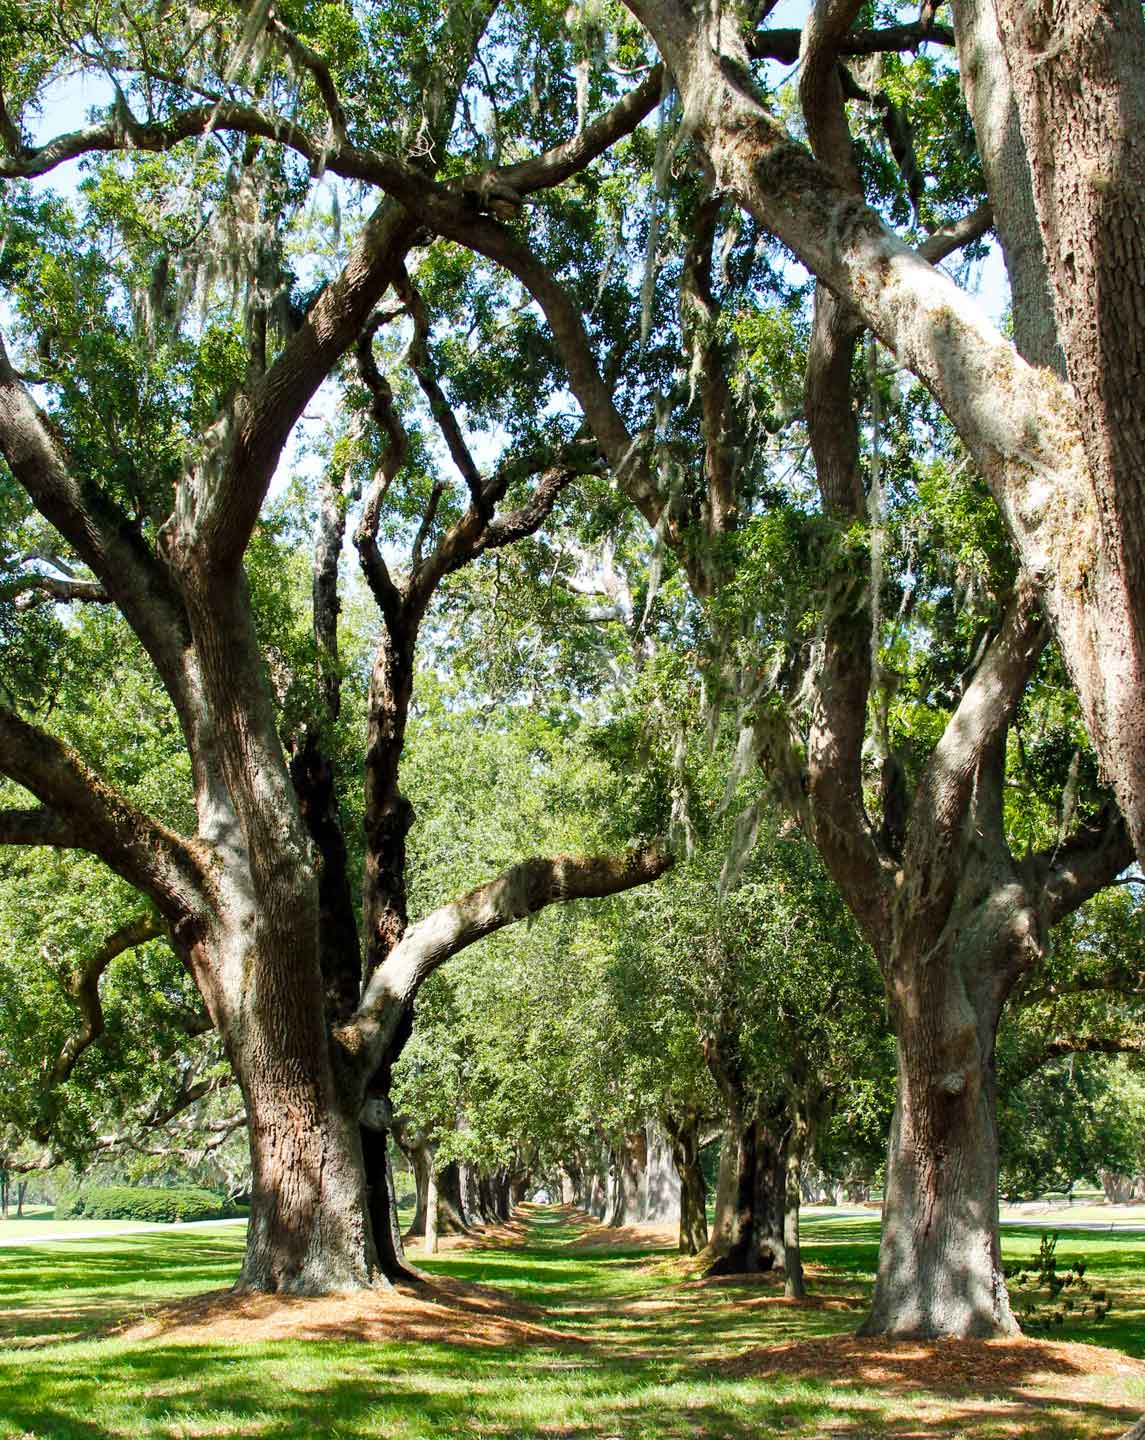 What to do on the beautiful and natural st simons island